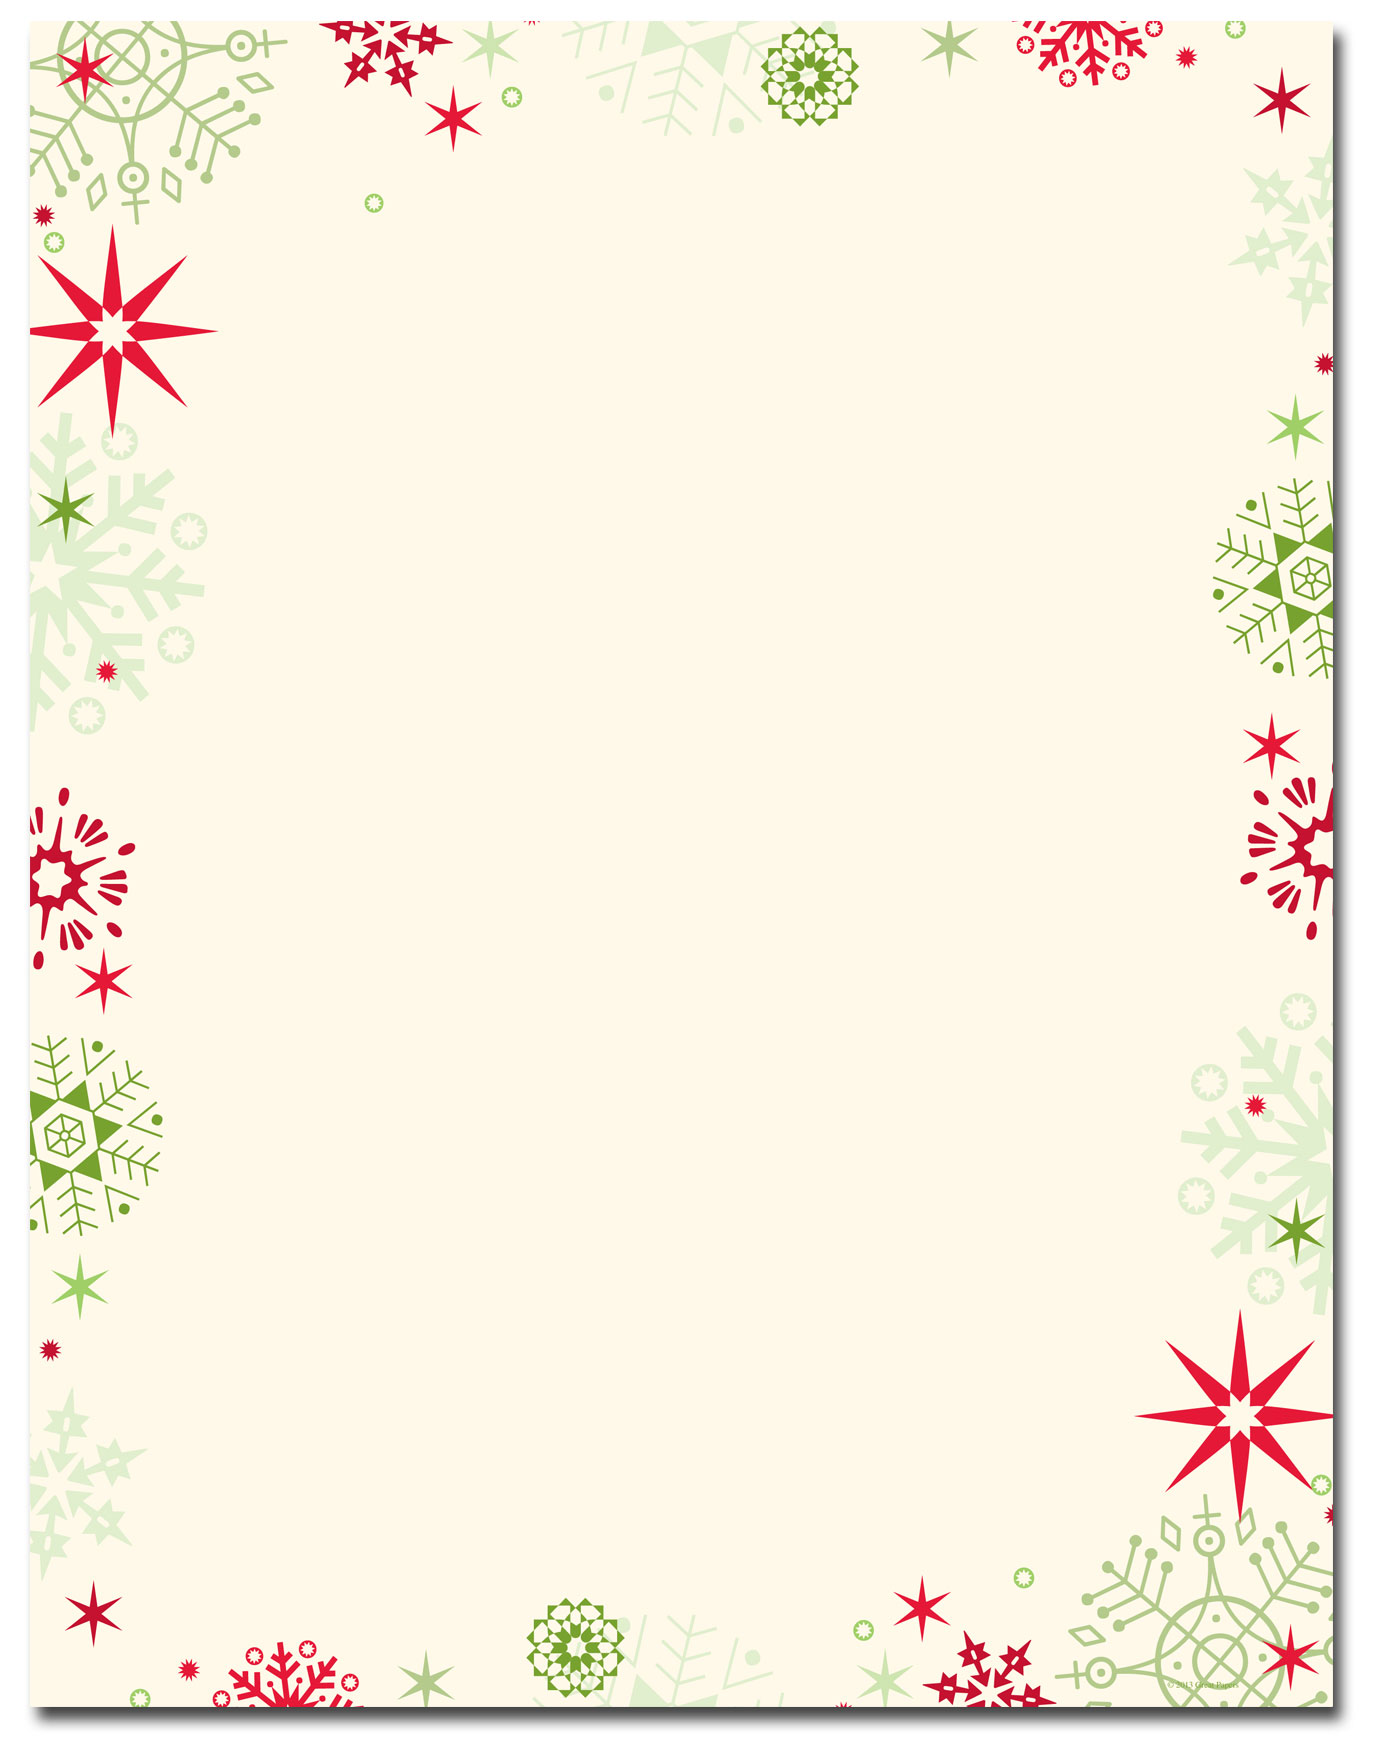 Christmas Stationery - Red u0026 Green Flakes Letterhead